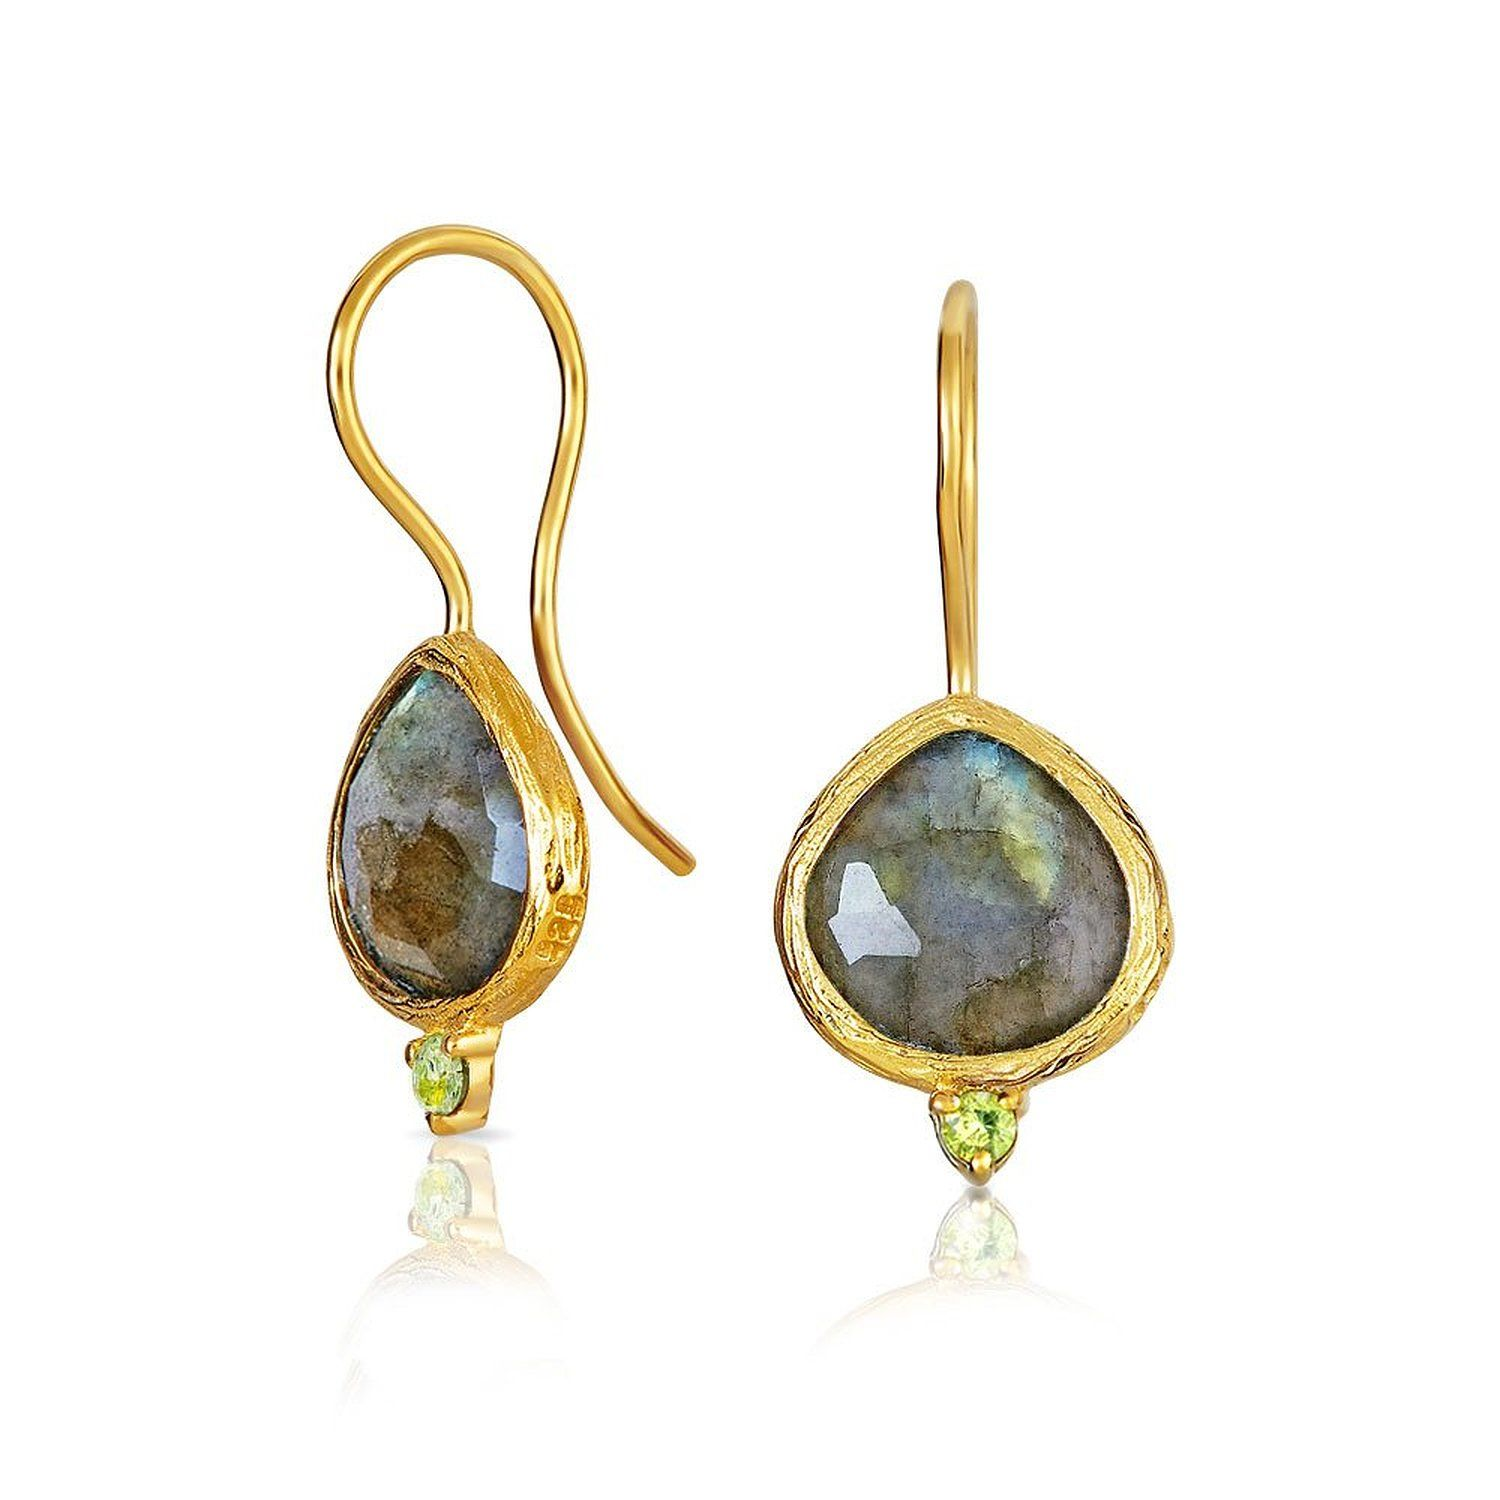 Bling Jewelry 925 Silver Labradorite Prehnite Teardrop Earrings nnBwGQ